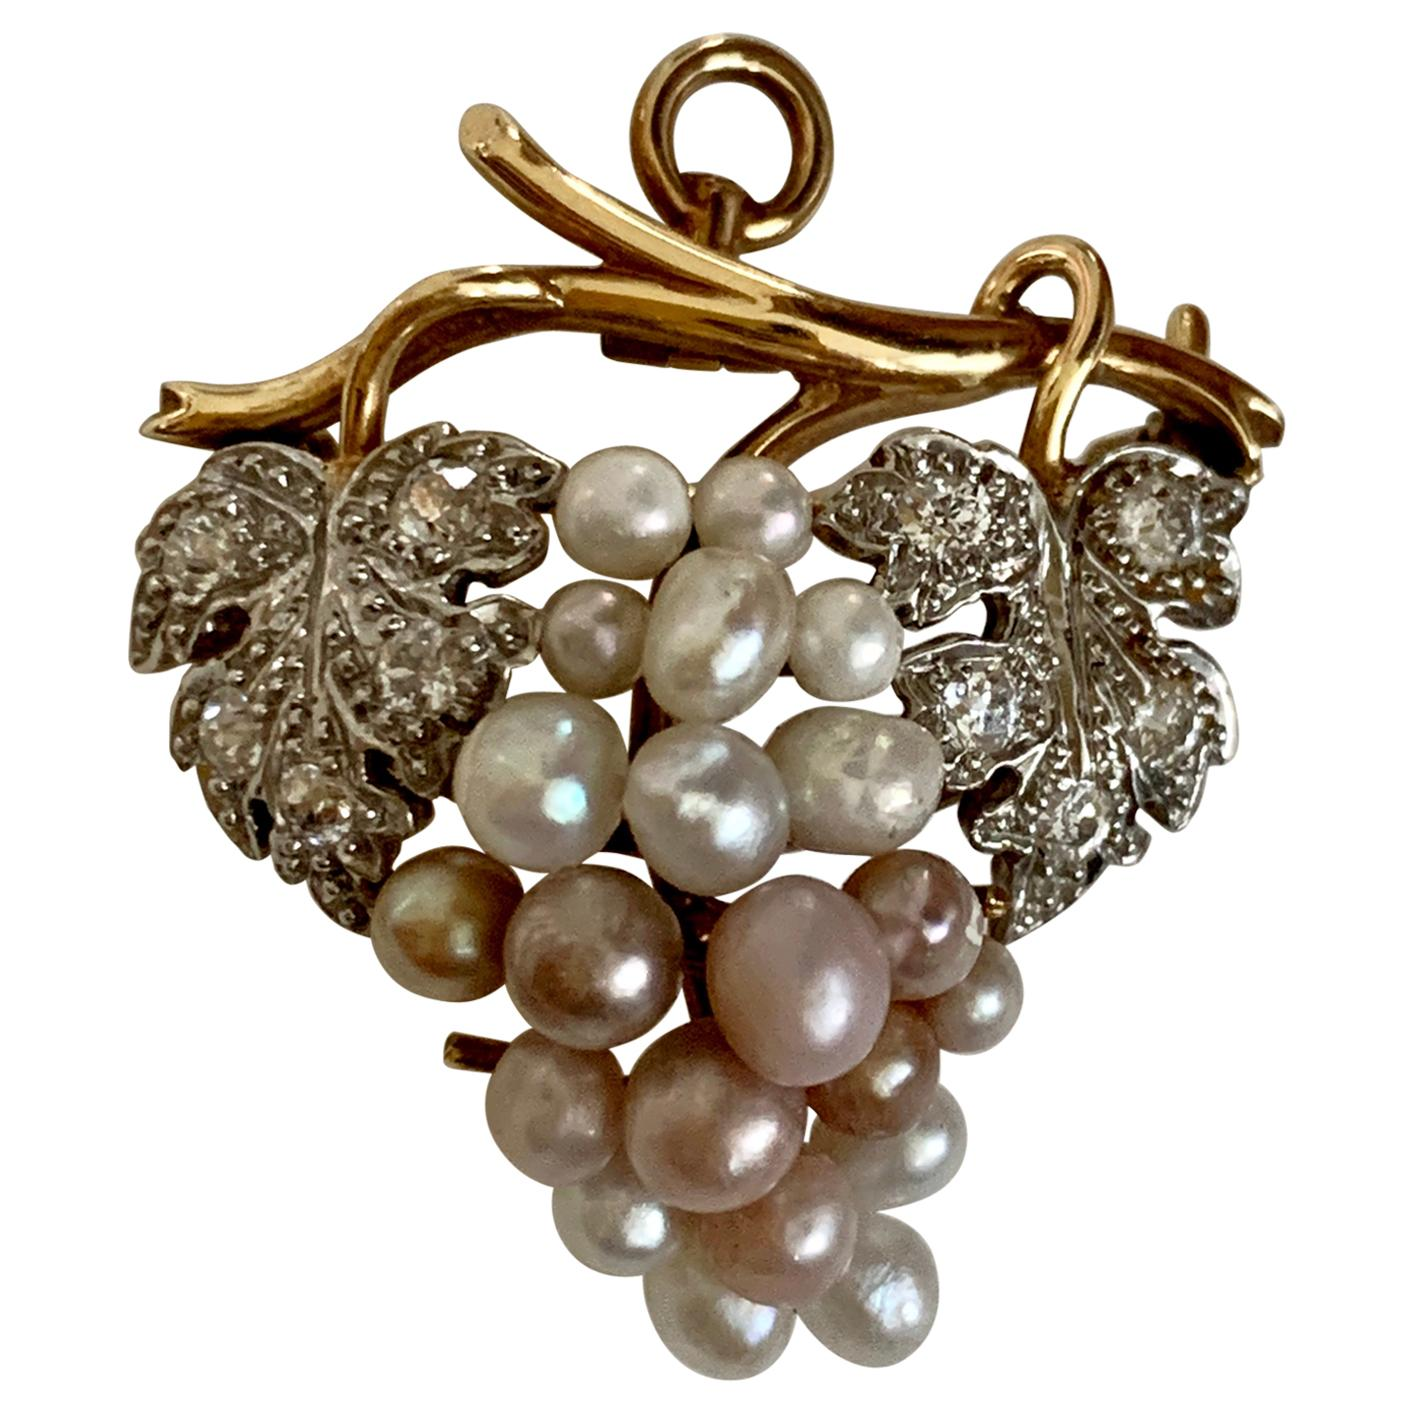 Euro Cut Diamond and Pearl Grape Design 14 Karat Yellow Gold Pendant Brooch Pin